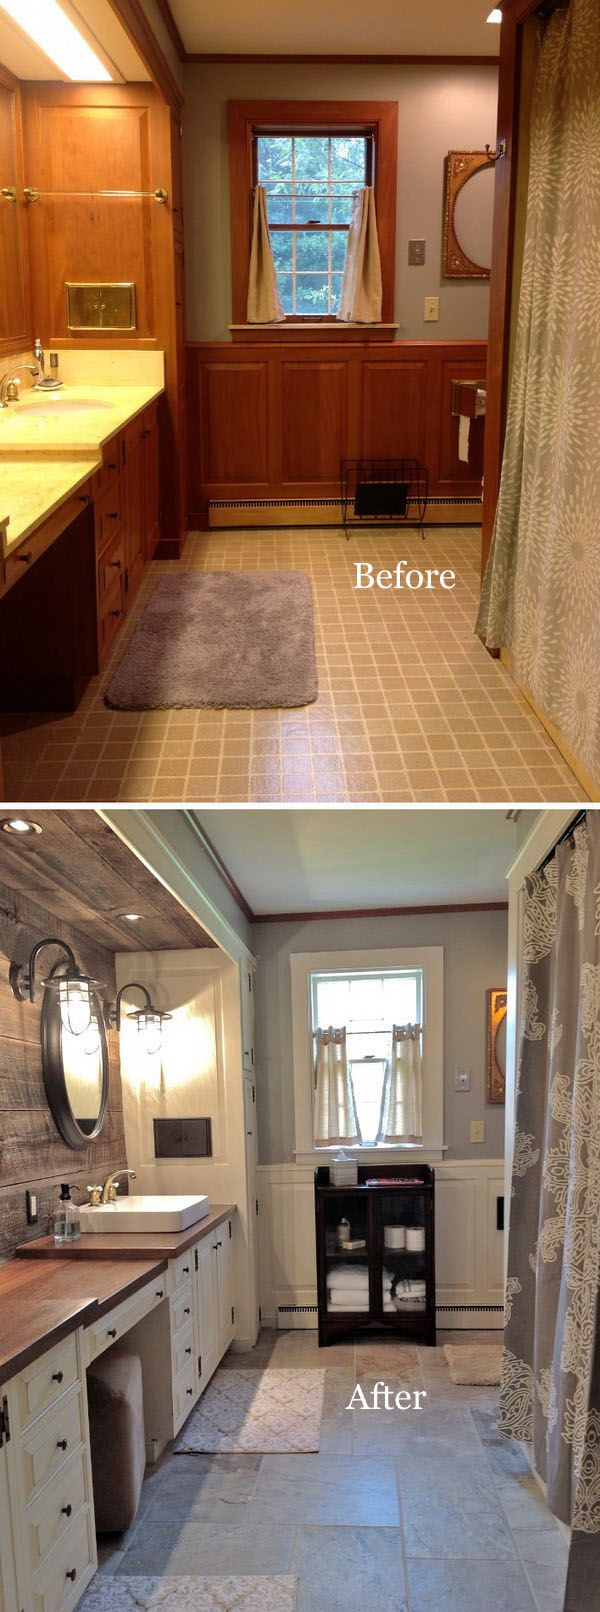 Before and after 40 amazing bathroom makeovers in 2019 - Bathroom makeovers before and after ...